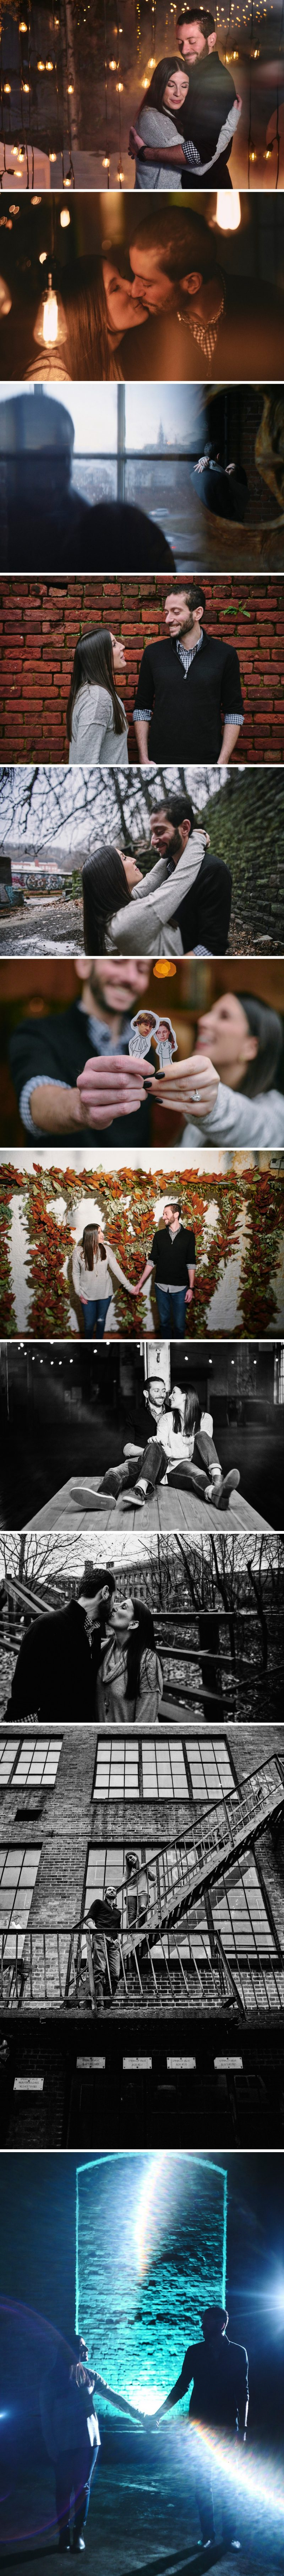 Come inside Art Factory Studios for an engagement sessions for bride to be Alyssa and groom to be Leo. Their industrial wedding venue is located in Paterson, New Jersey near The Great Falls.